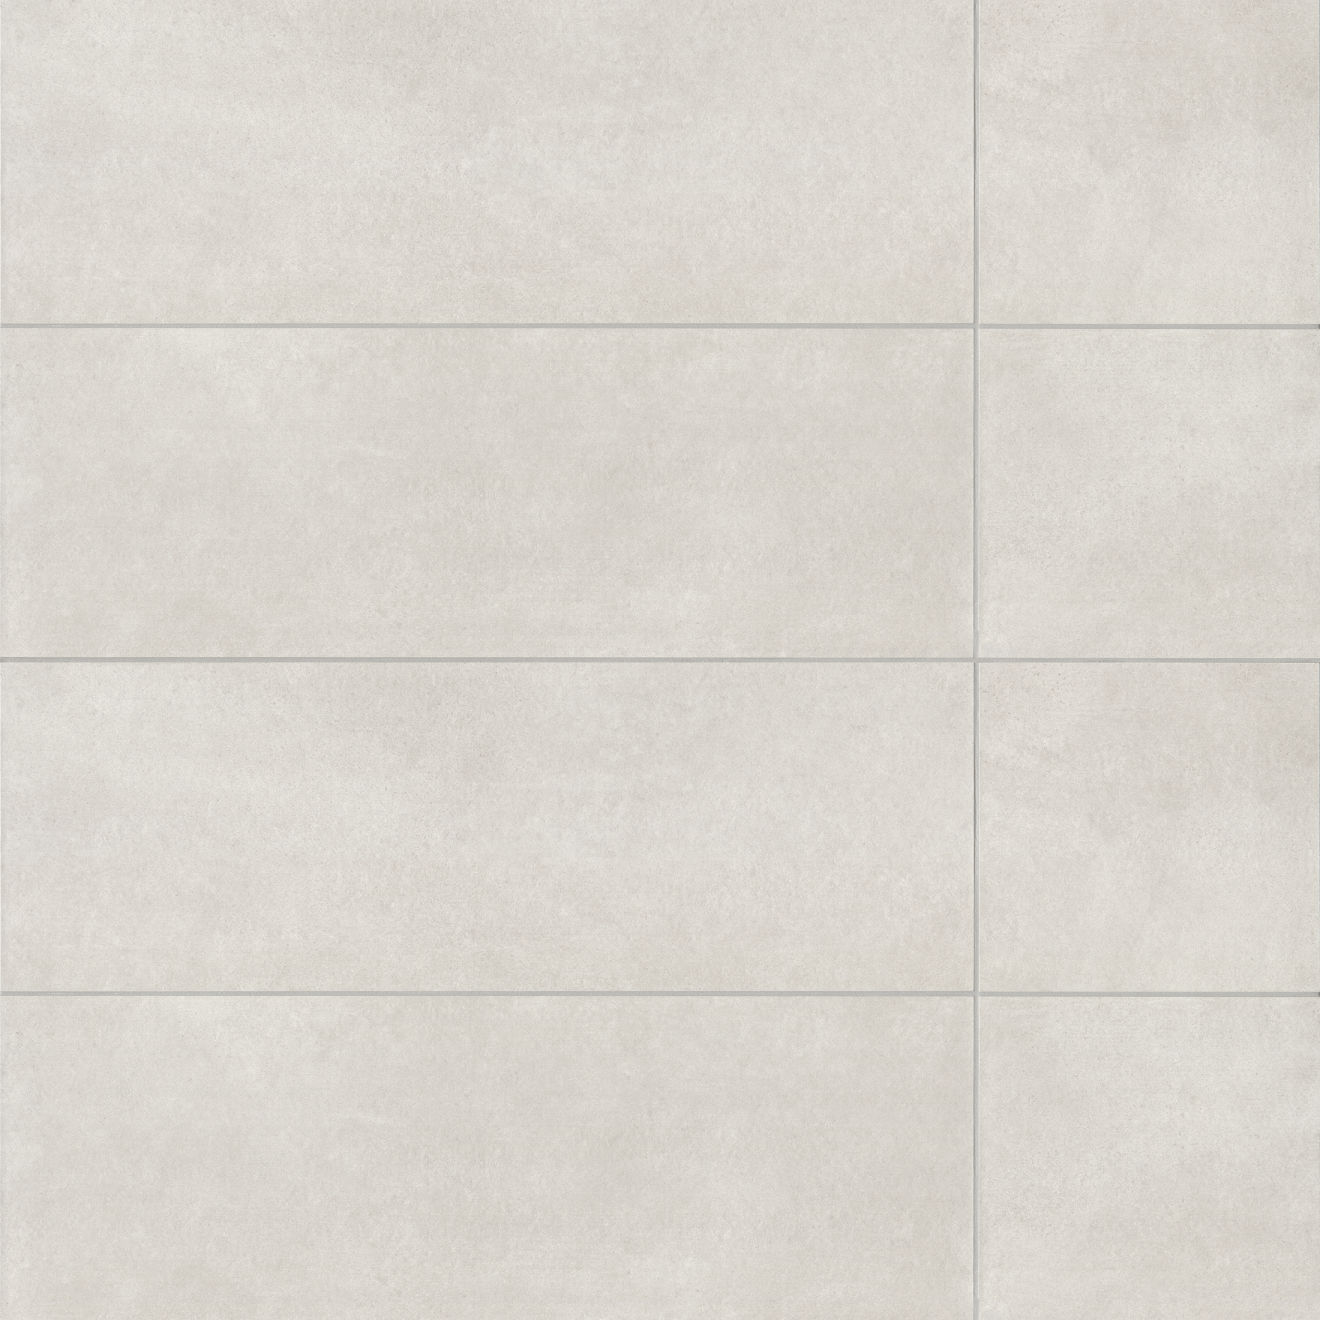 "Calix 12"" x 36"" Matte Ceramic Wall Tile in Grey"